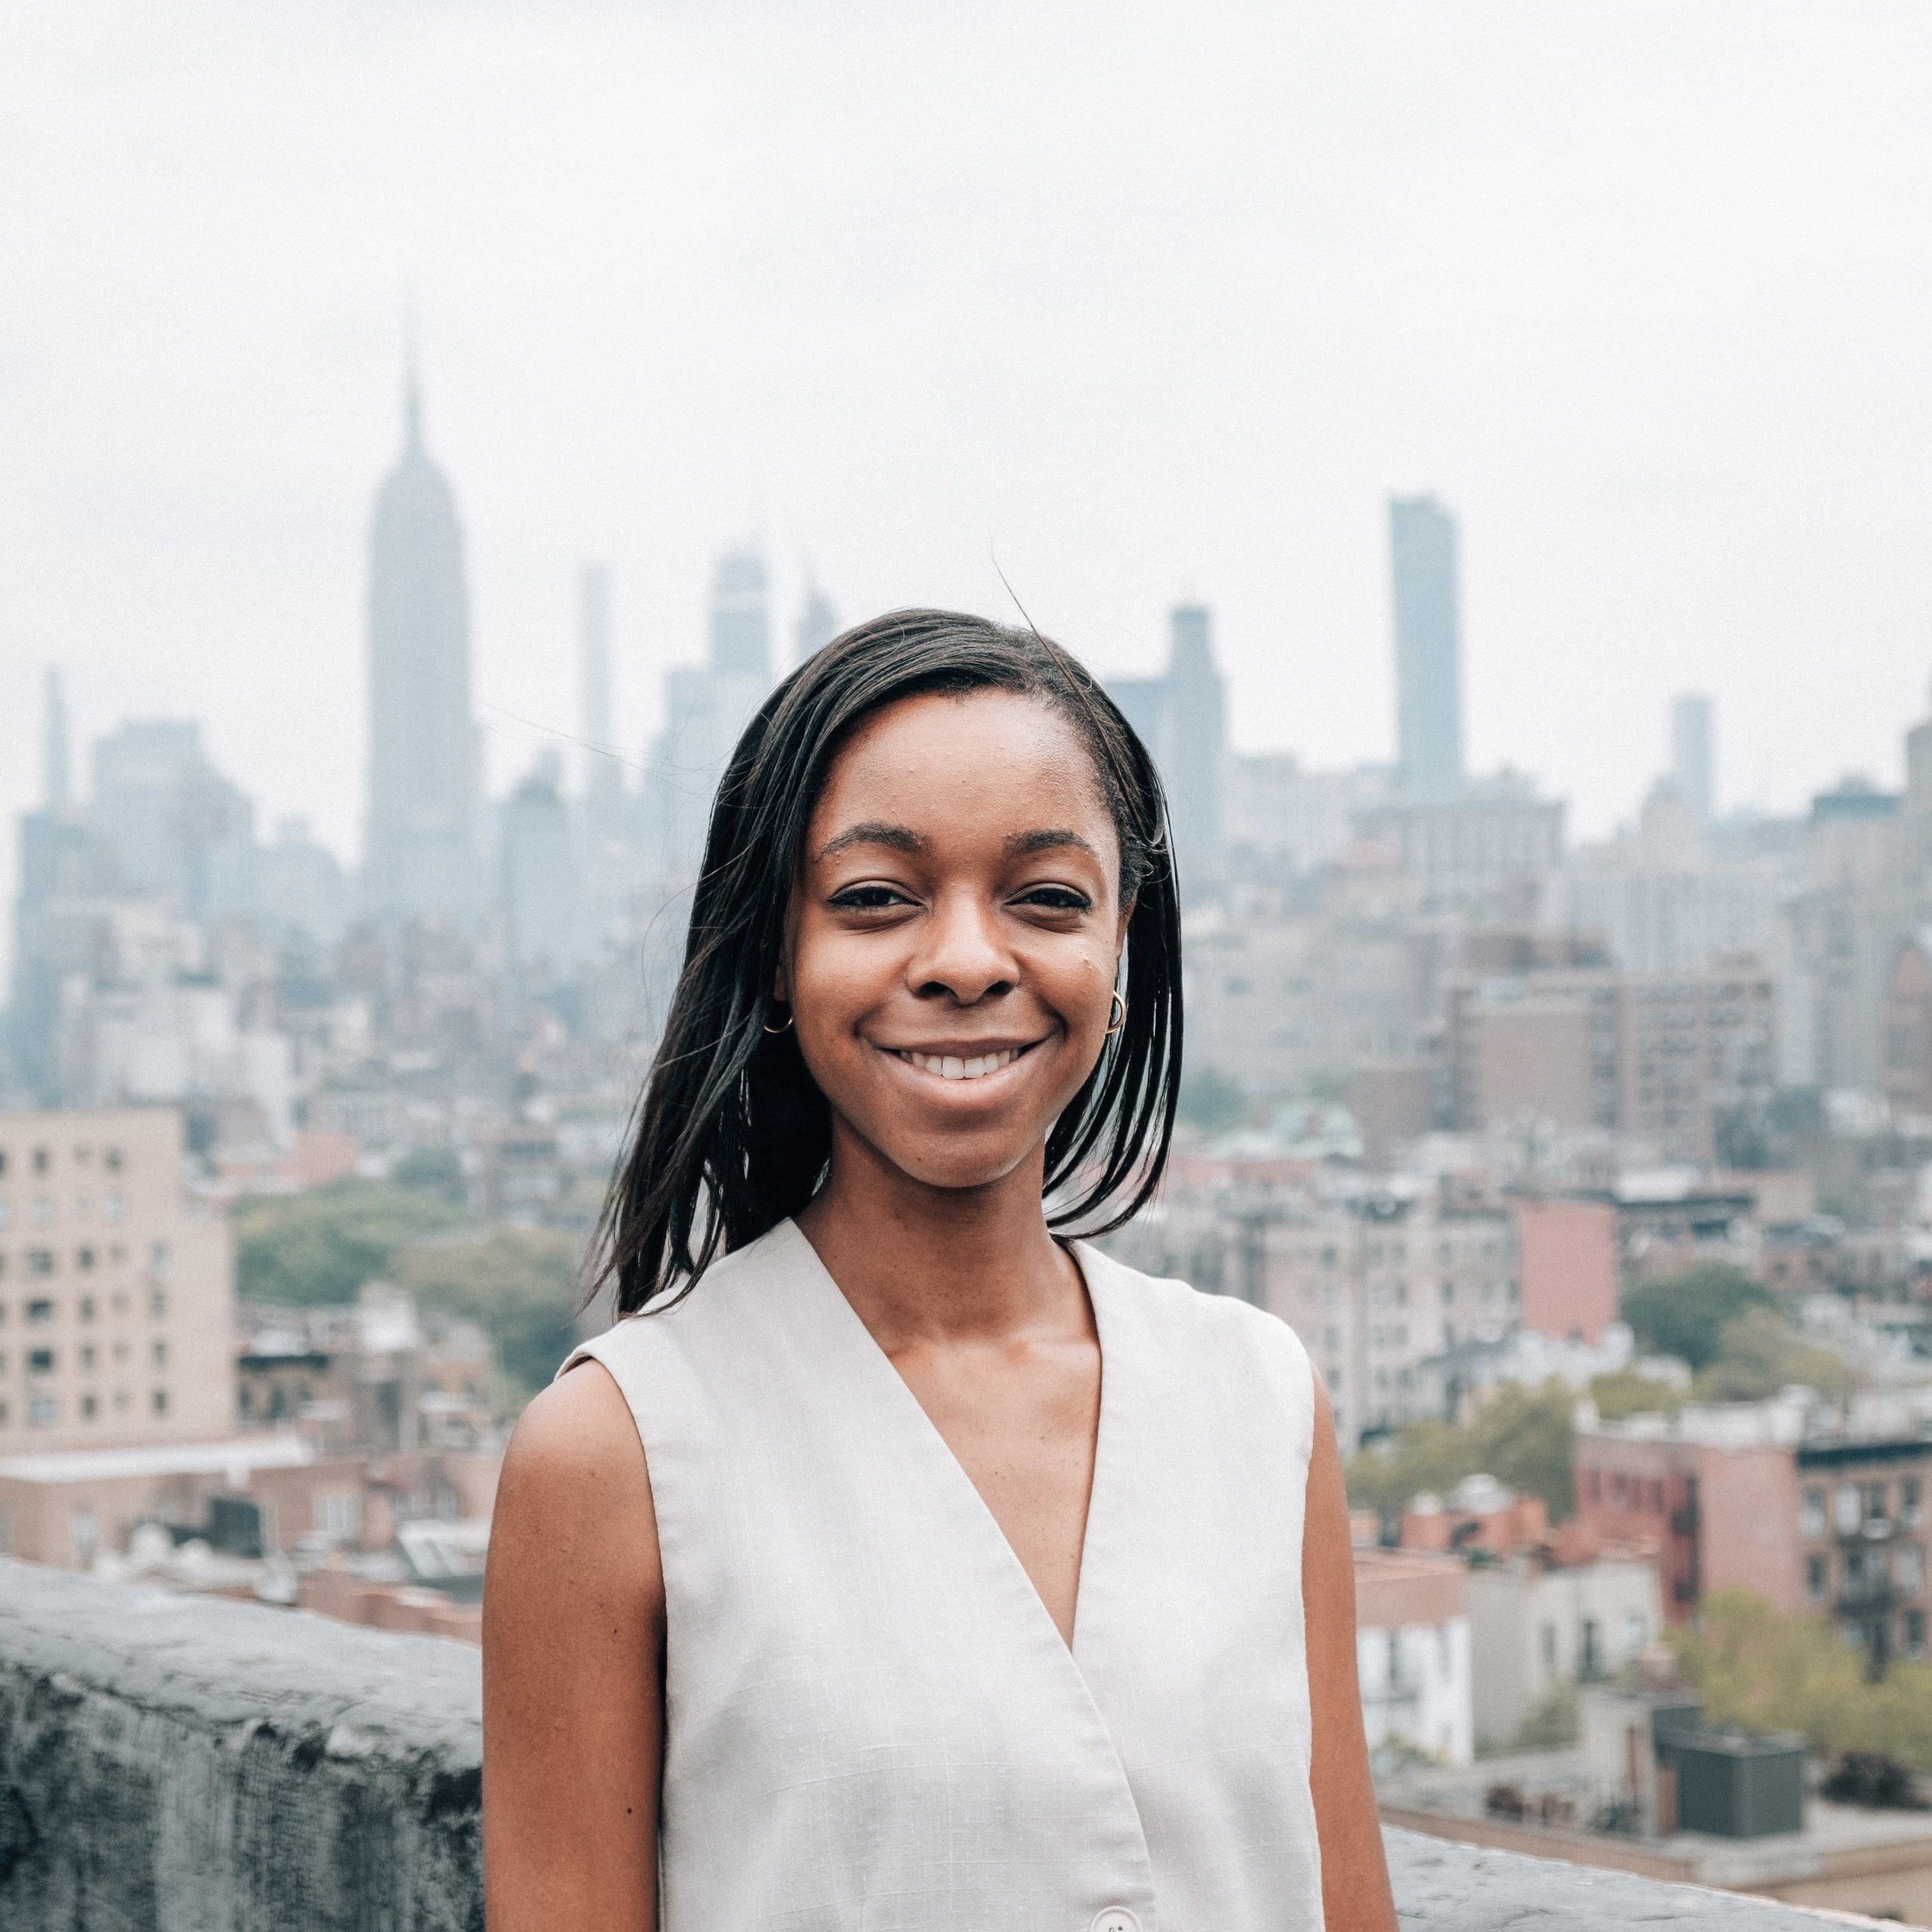 Joselyn Dontfraid - Designerjdontfraid@inc.nycJoselyn Dontfraid is a Designer at INC. In 2018, she graduated with a Bachelor of Fine Art in Interior Design, while minoring in Architectural History, from Savannah College of Art and Design (SCAD). While at SCAD, she studied abroad in Hong Kong, expanding her knowledge of culture and design. Originally from Florida, Joselyn moved to New York City to embark on her creative career. Her design goal is to create experiences that can positively affect the user. Her interest in multiple aspects of art and design, including graphics, photography, and fashion, mold her into the designer she is.